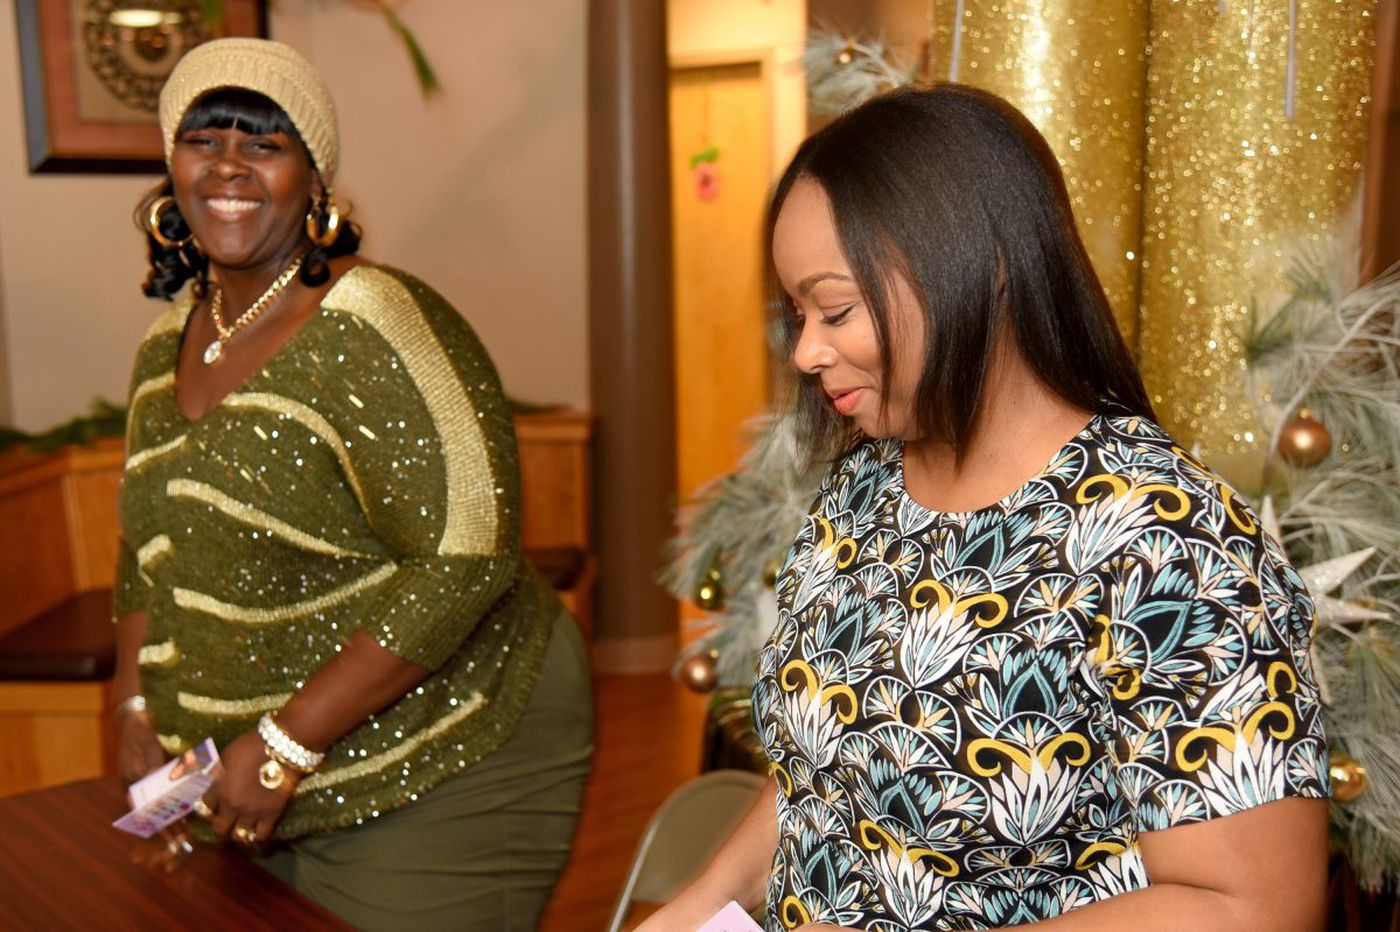 To lower infant mortality in Camden, neighborhood women educate each other